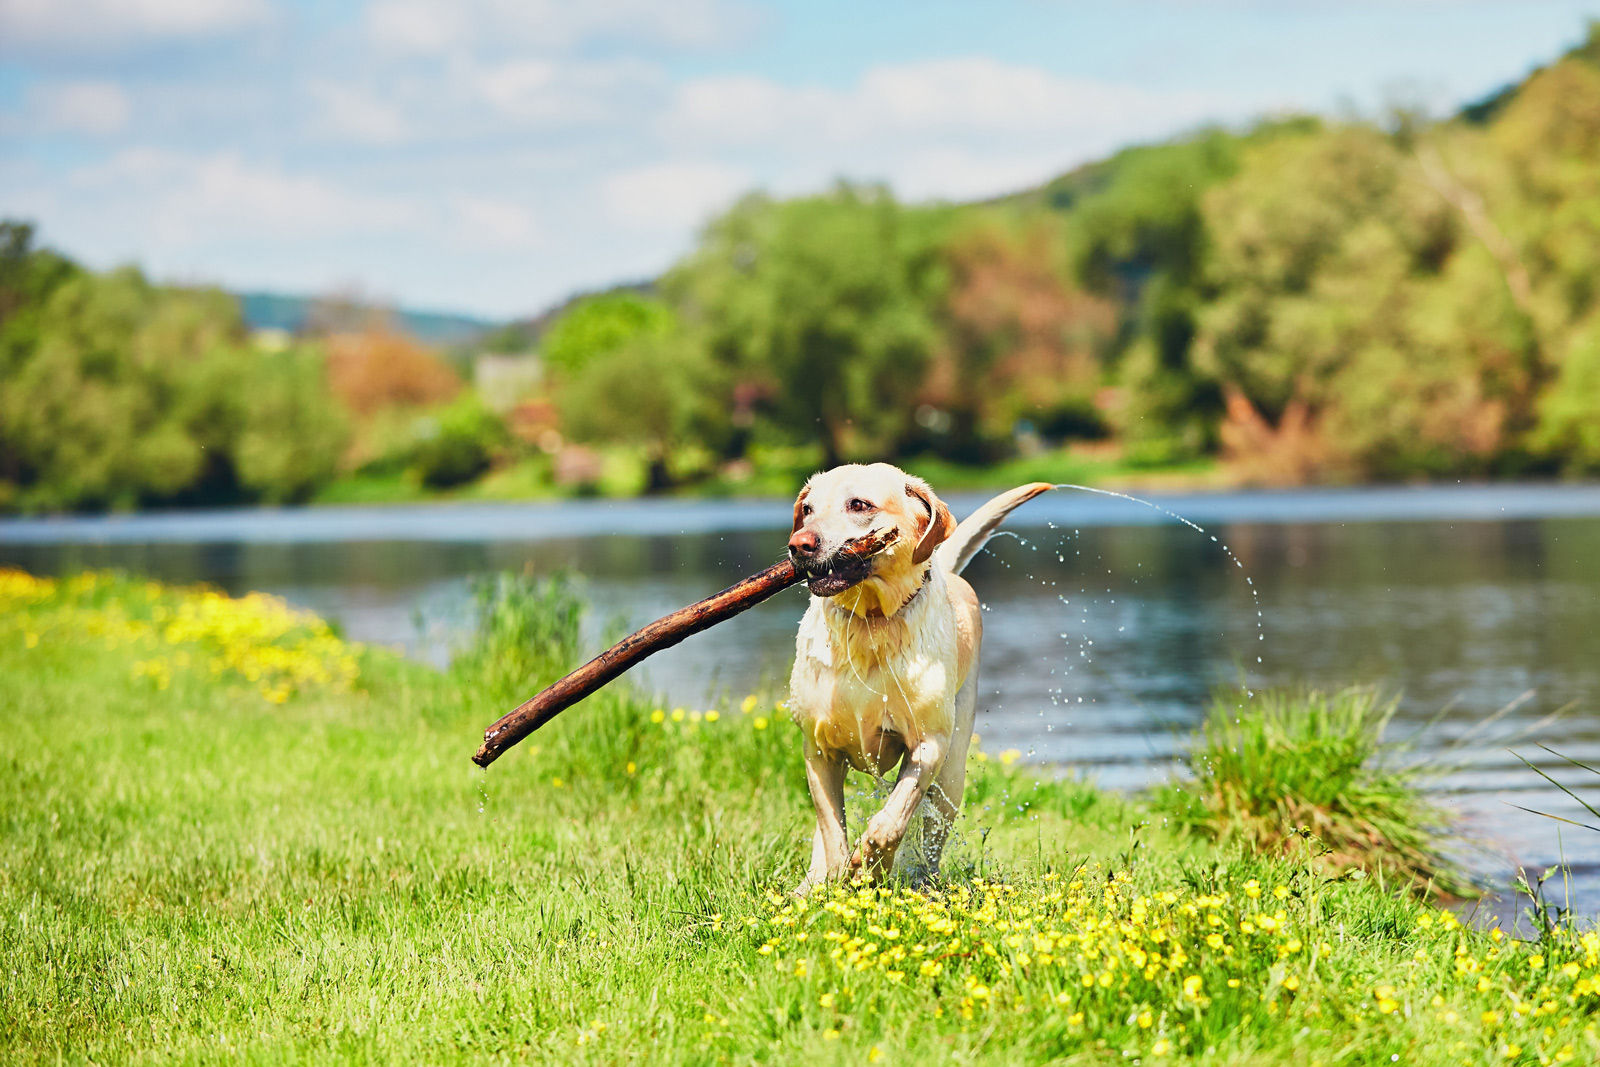 Let your dog run, fetch and play at one of the many dog parks located near Comfort Suites Kelowna pet-friendly hotel.